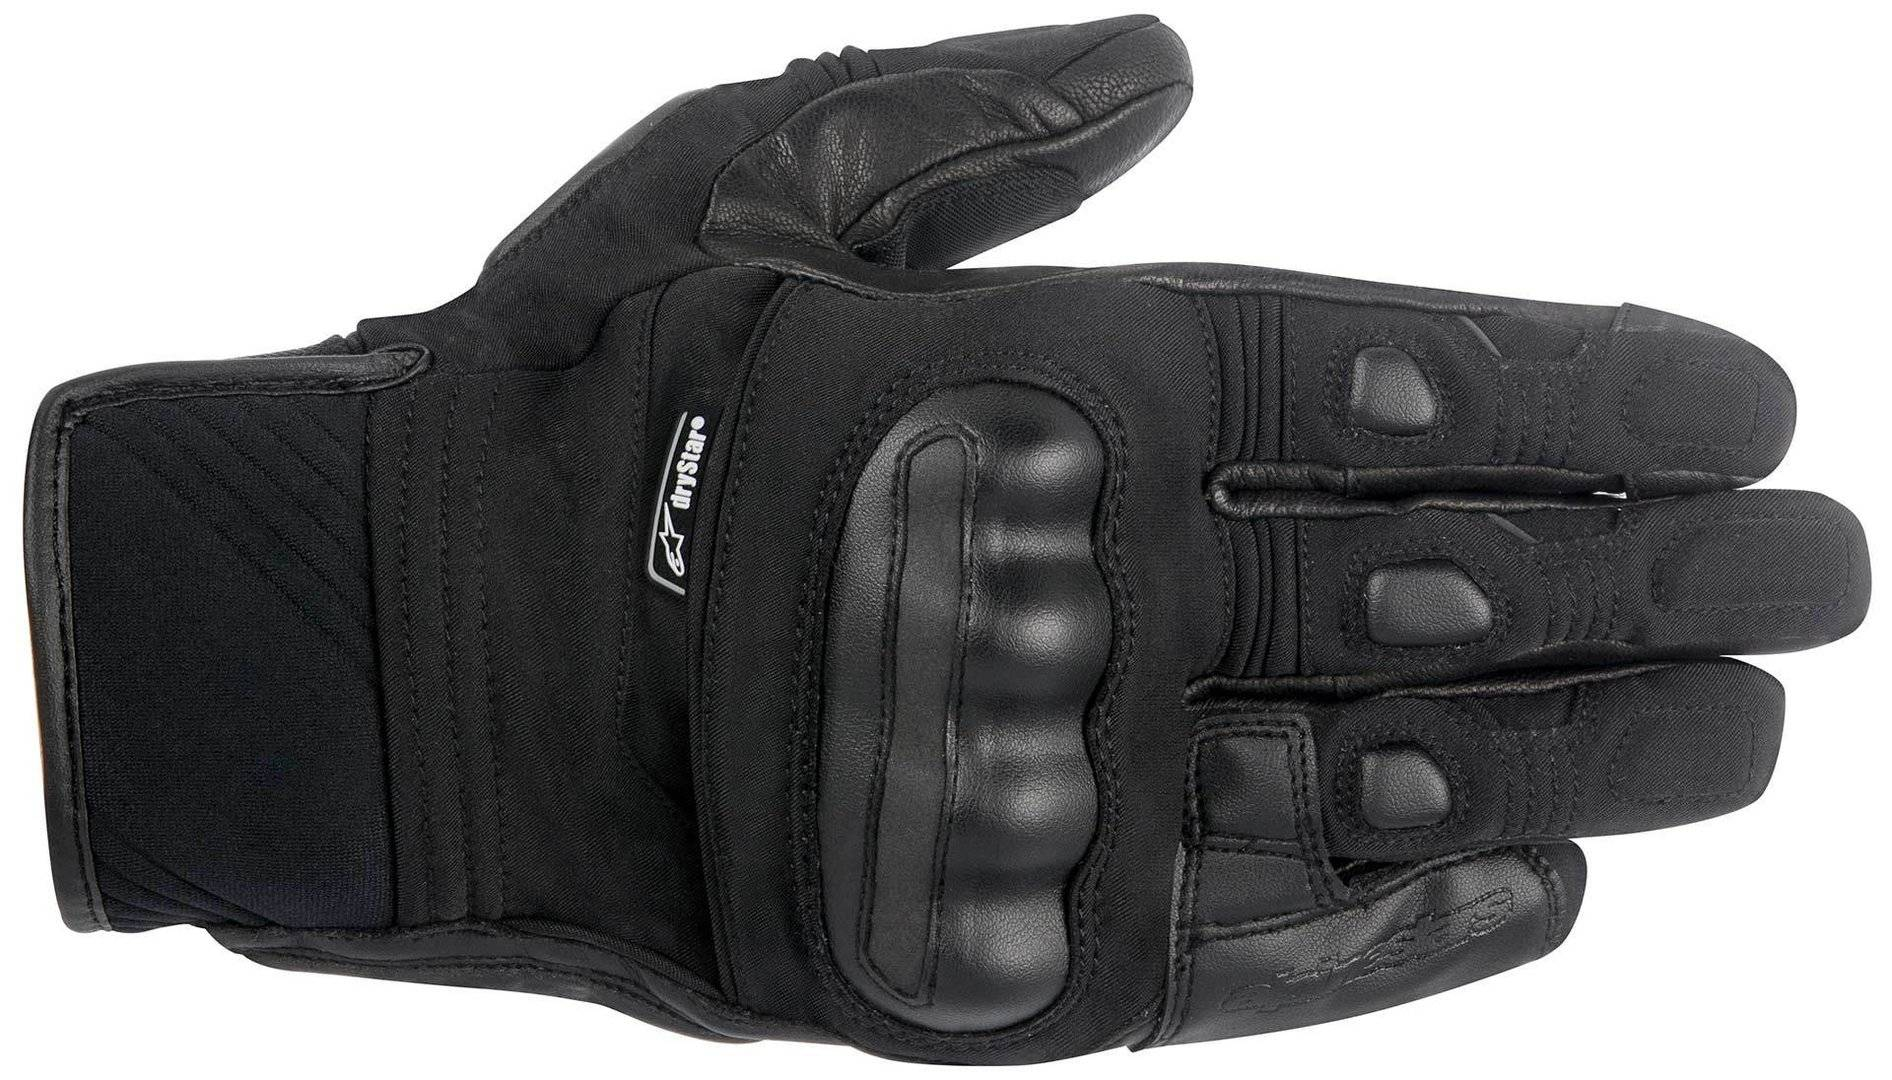 Alpinestars Corozal DryStar Waterproof Gloves Black L